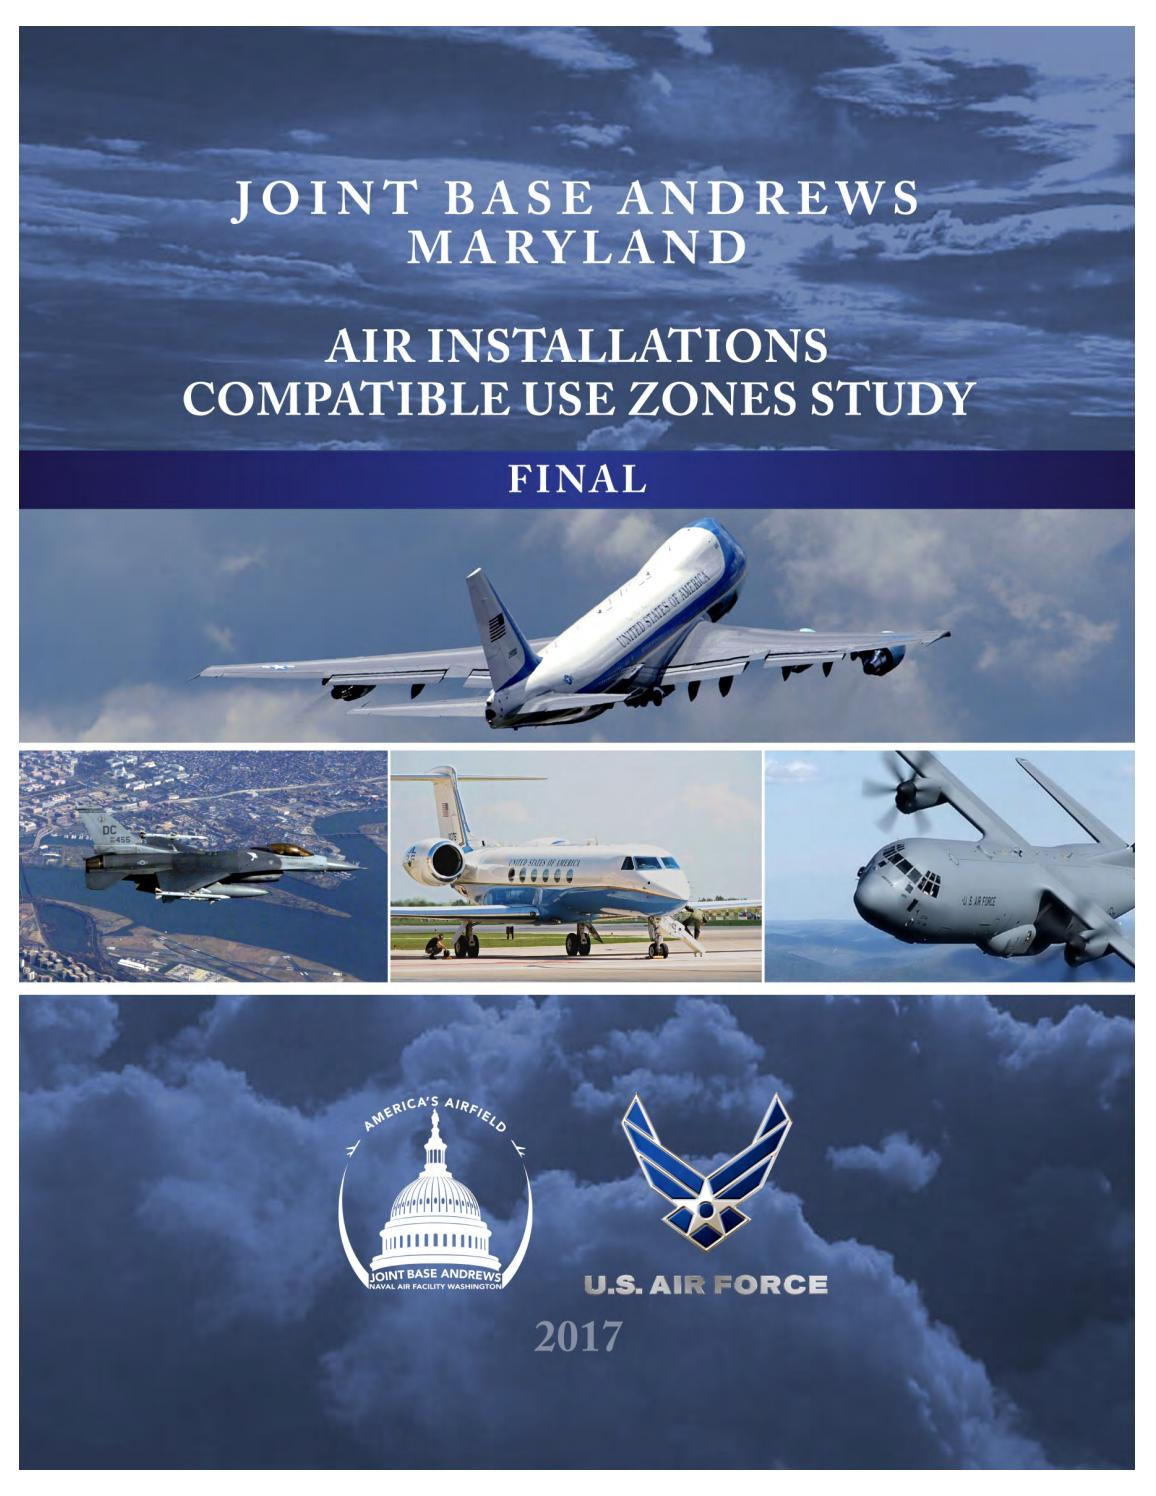 Joint Base Andrews, Maryland Air Installations Compatible